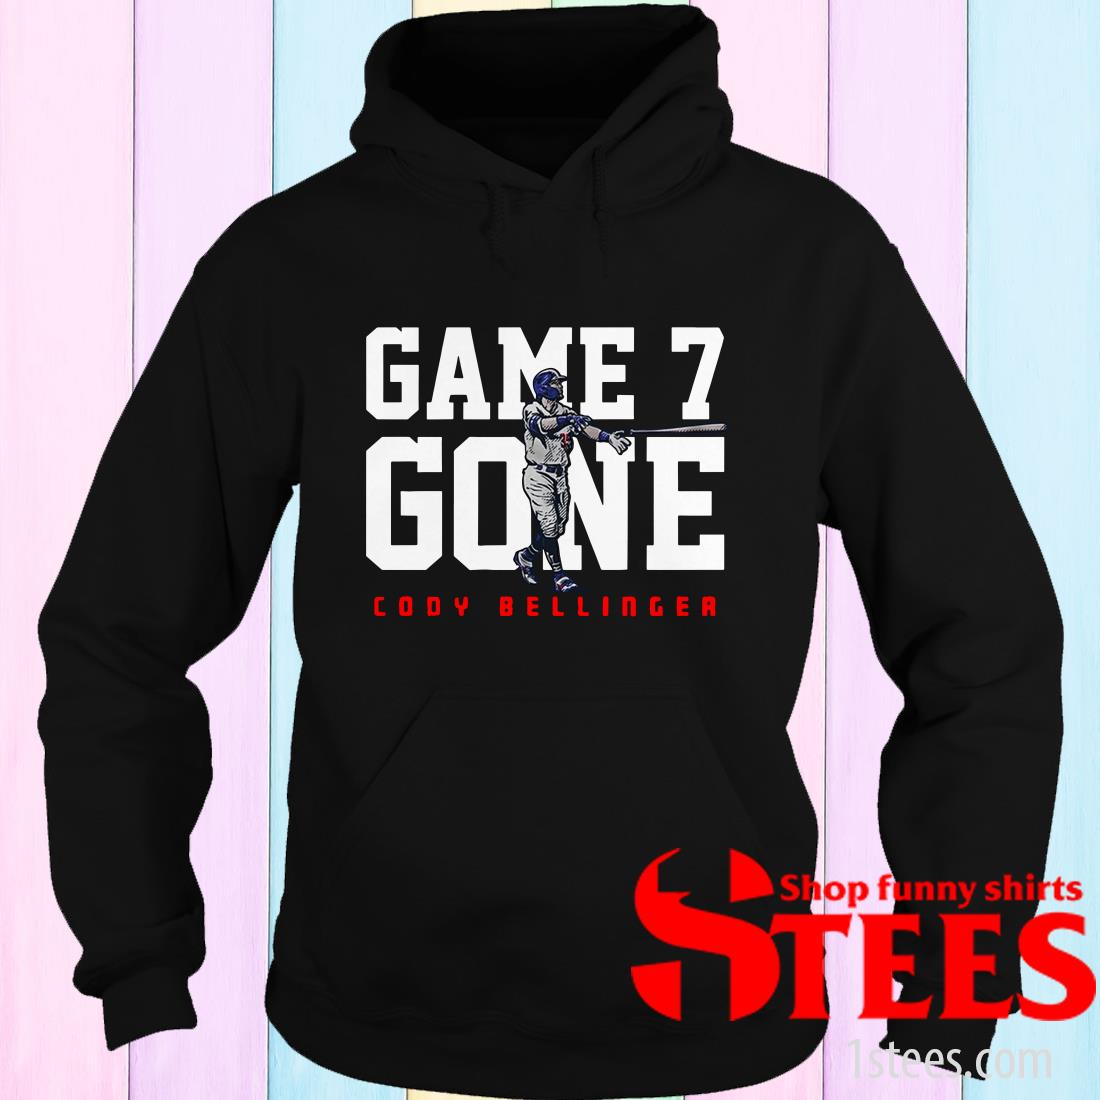 Cody Bellinger Game 7 Gone L.A.T Hoodies